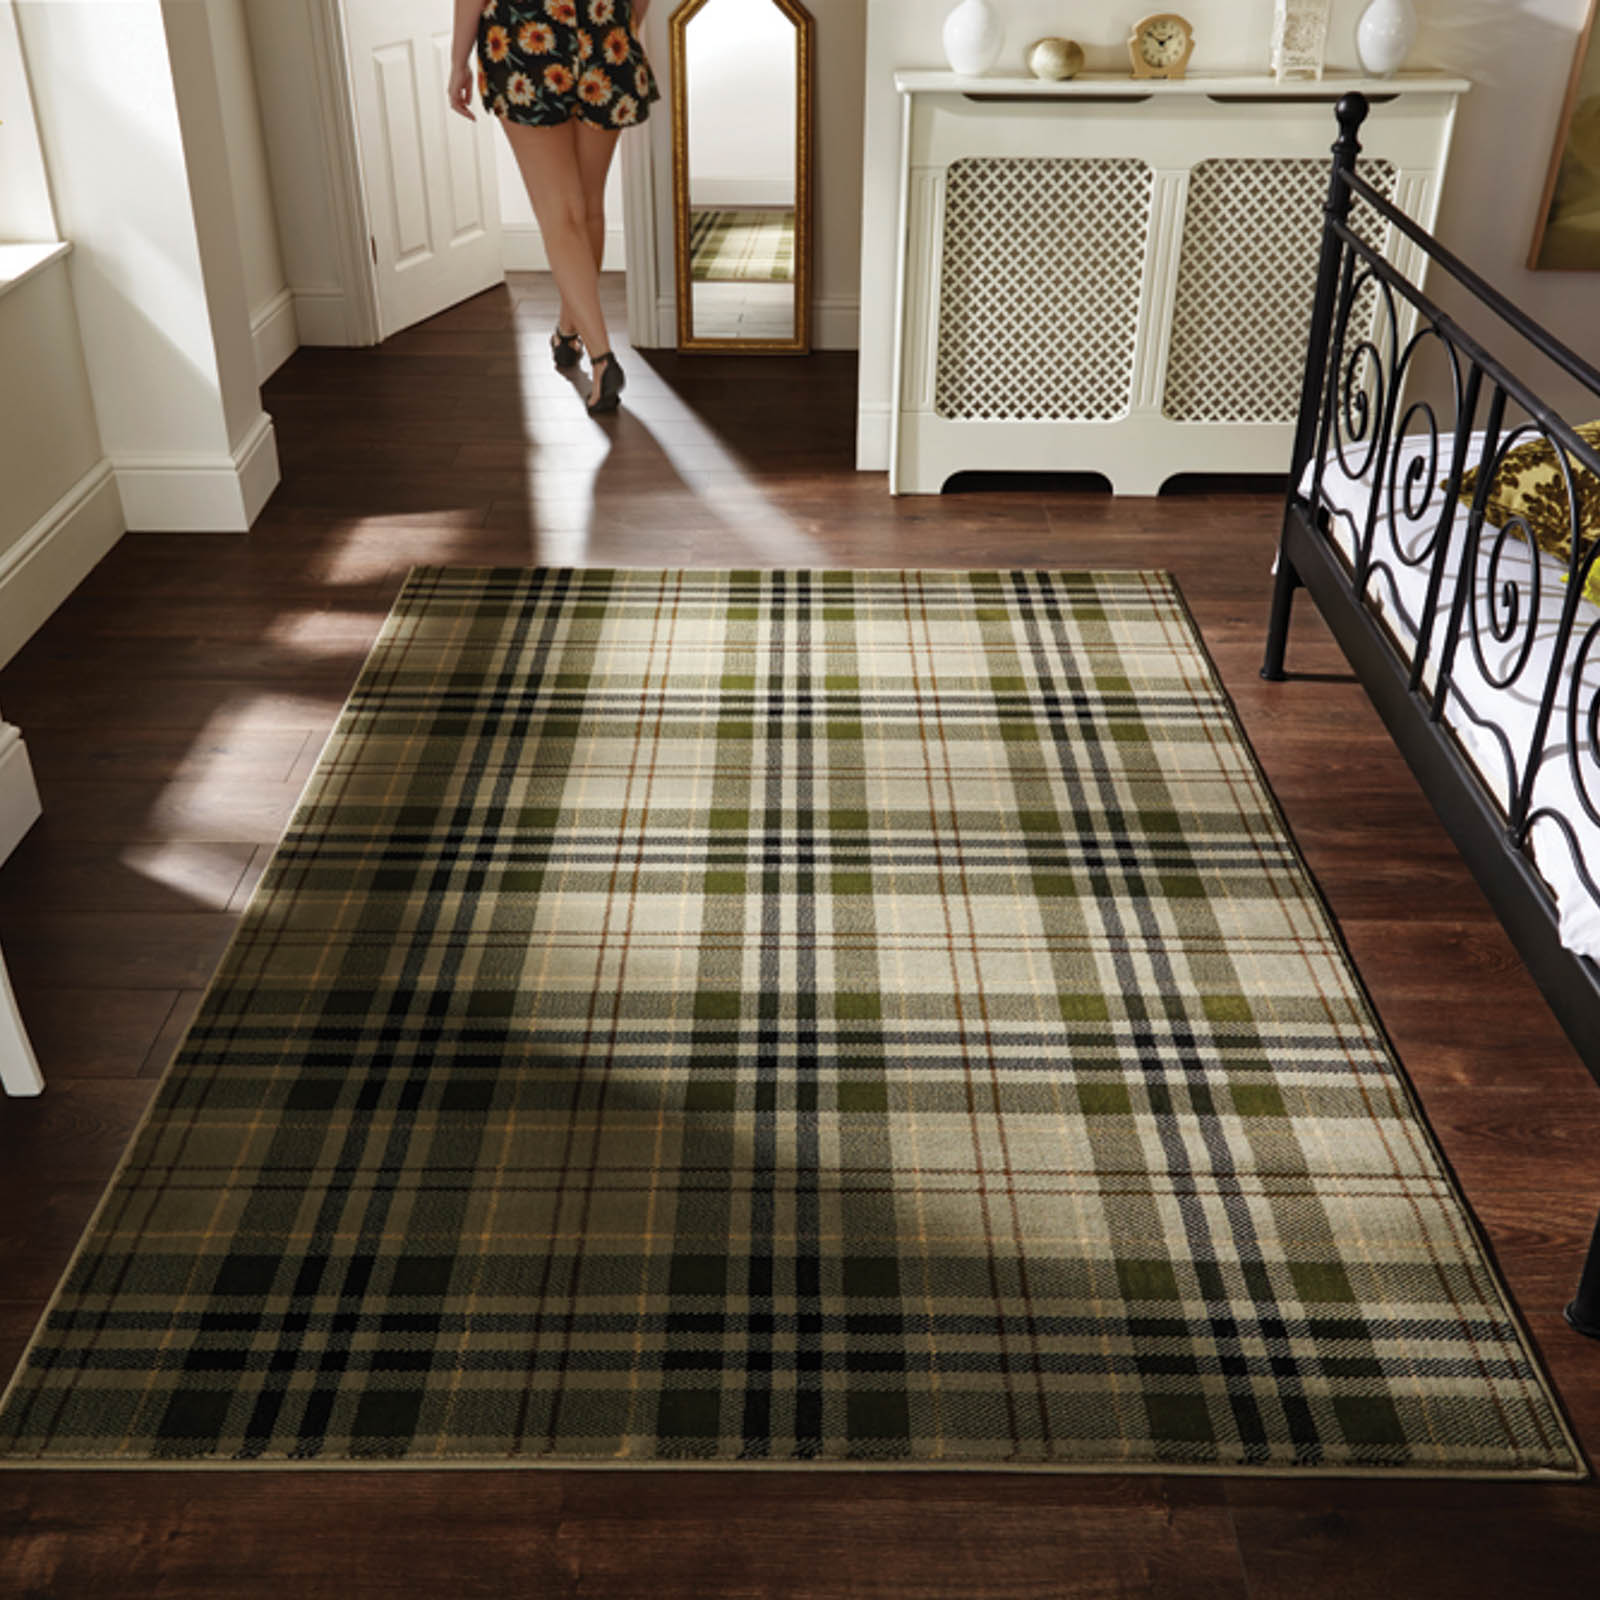 Glen Kilry Rugs in Sage